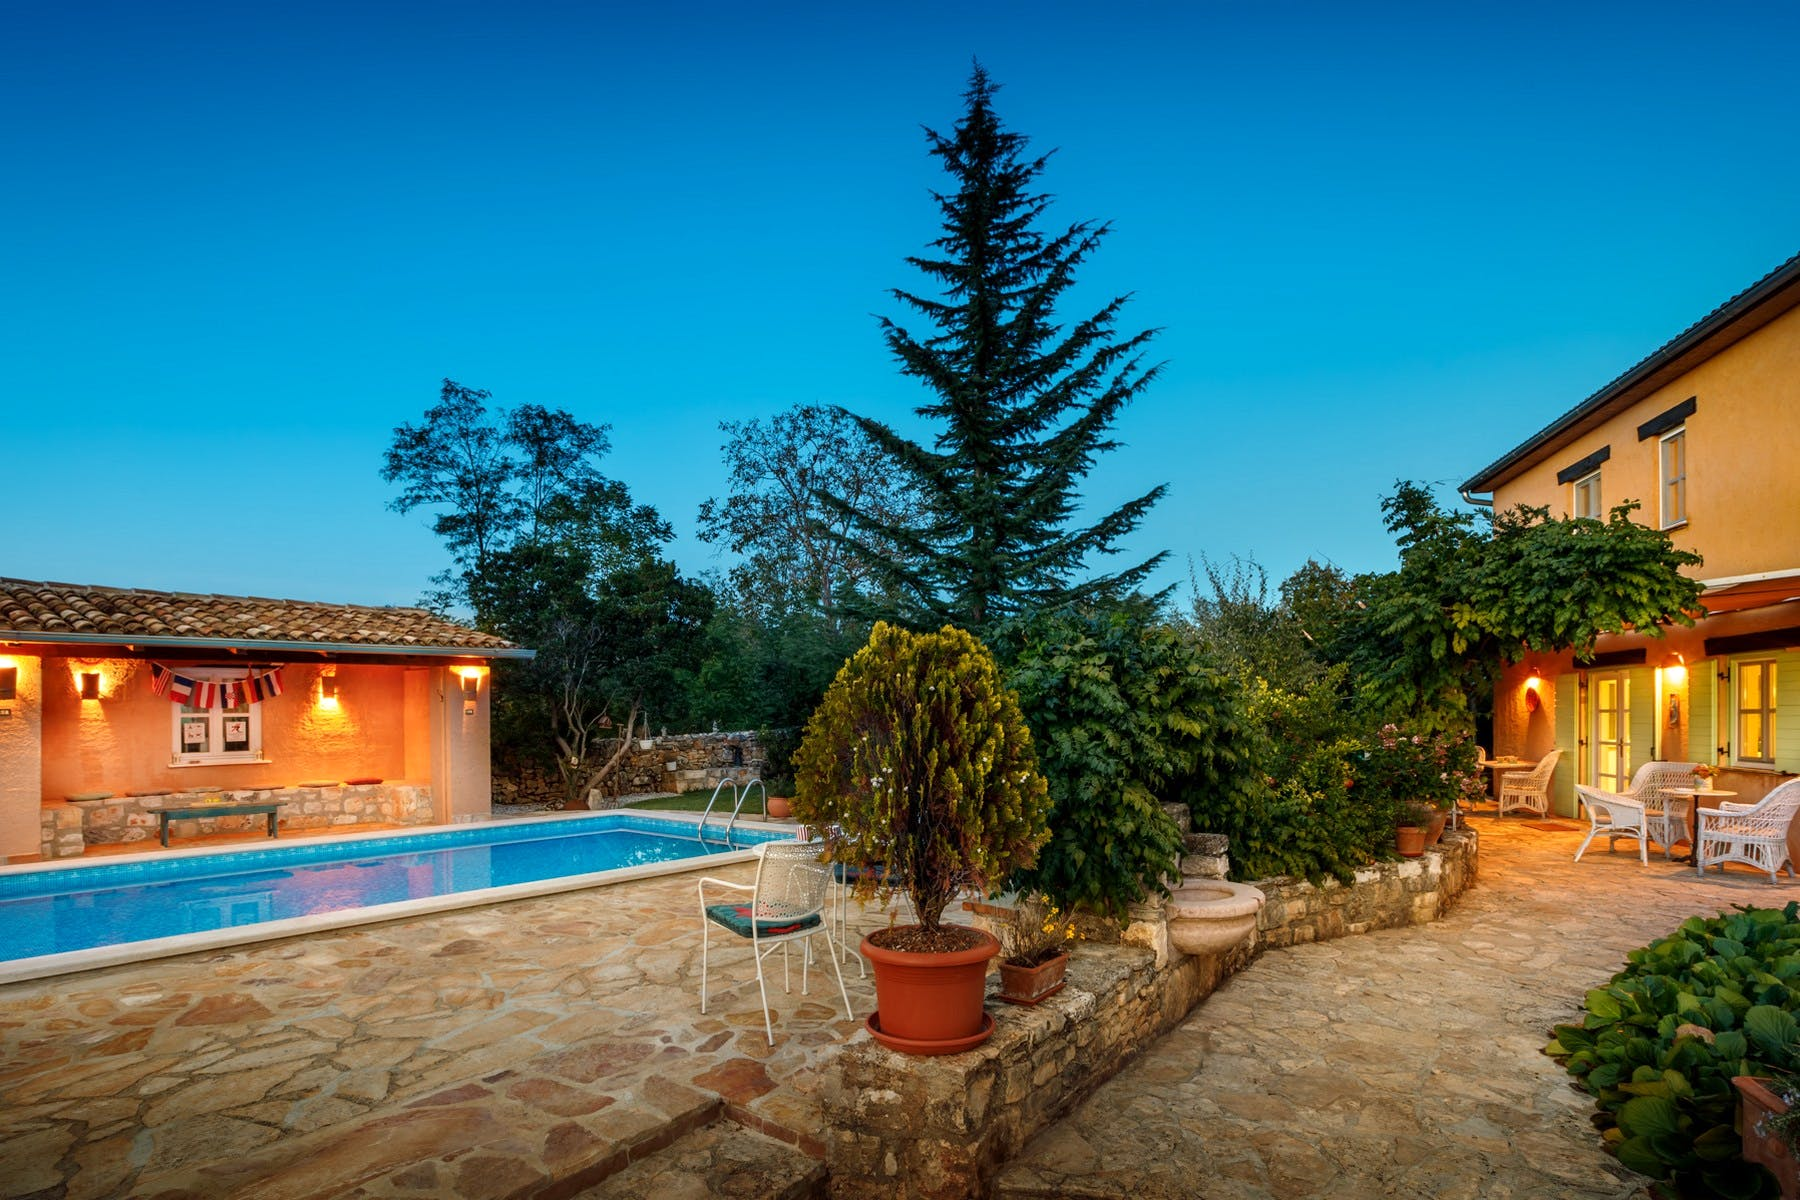 Night ambiance of the stone house for sale in Istria